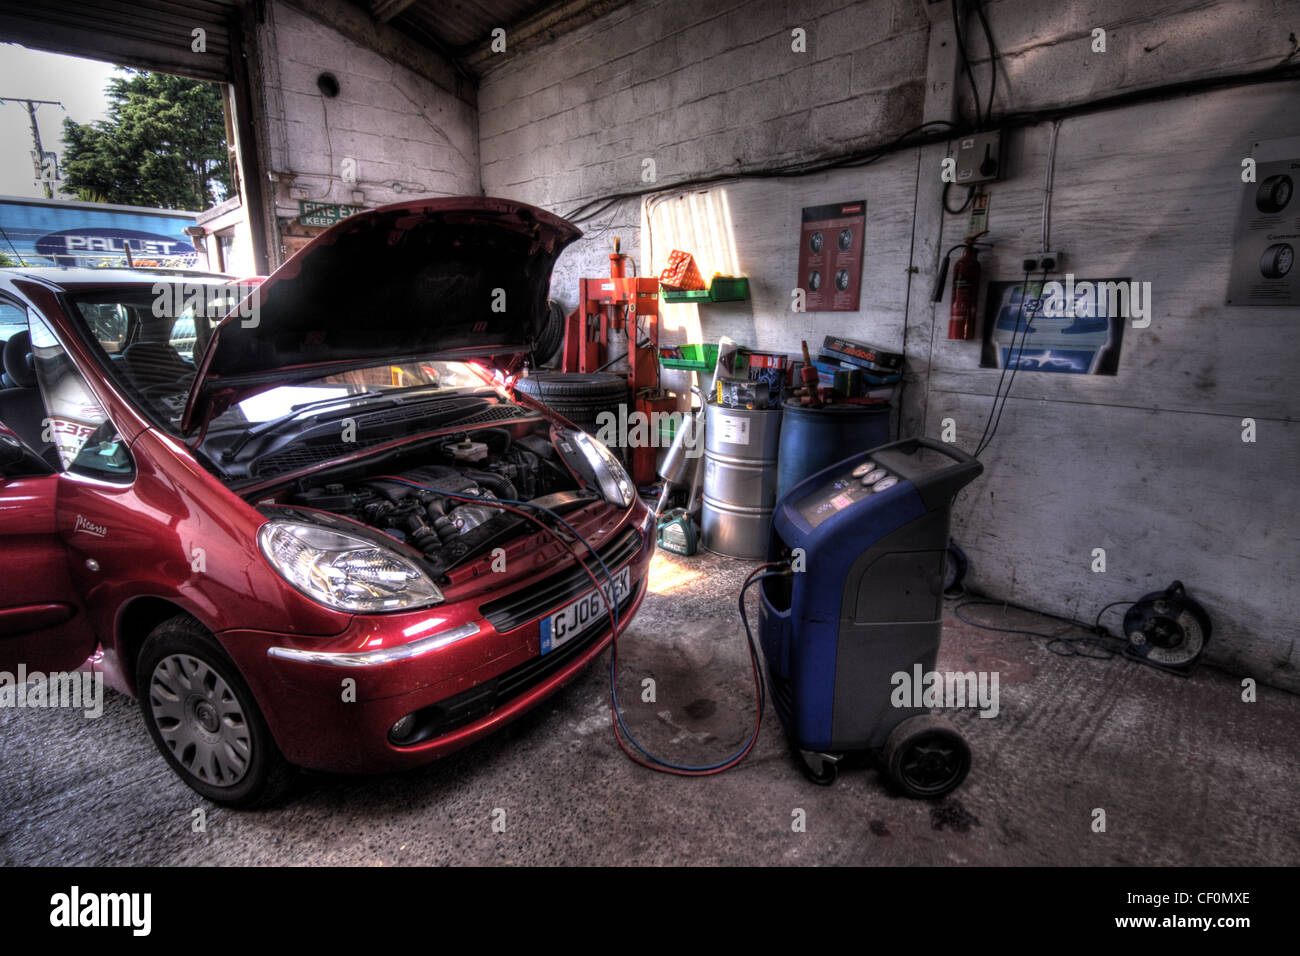 Picasso car in garage having air conditioning recharged - Stock Image